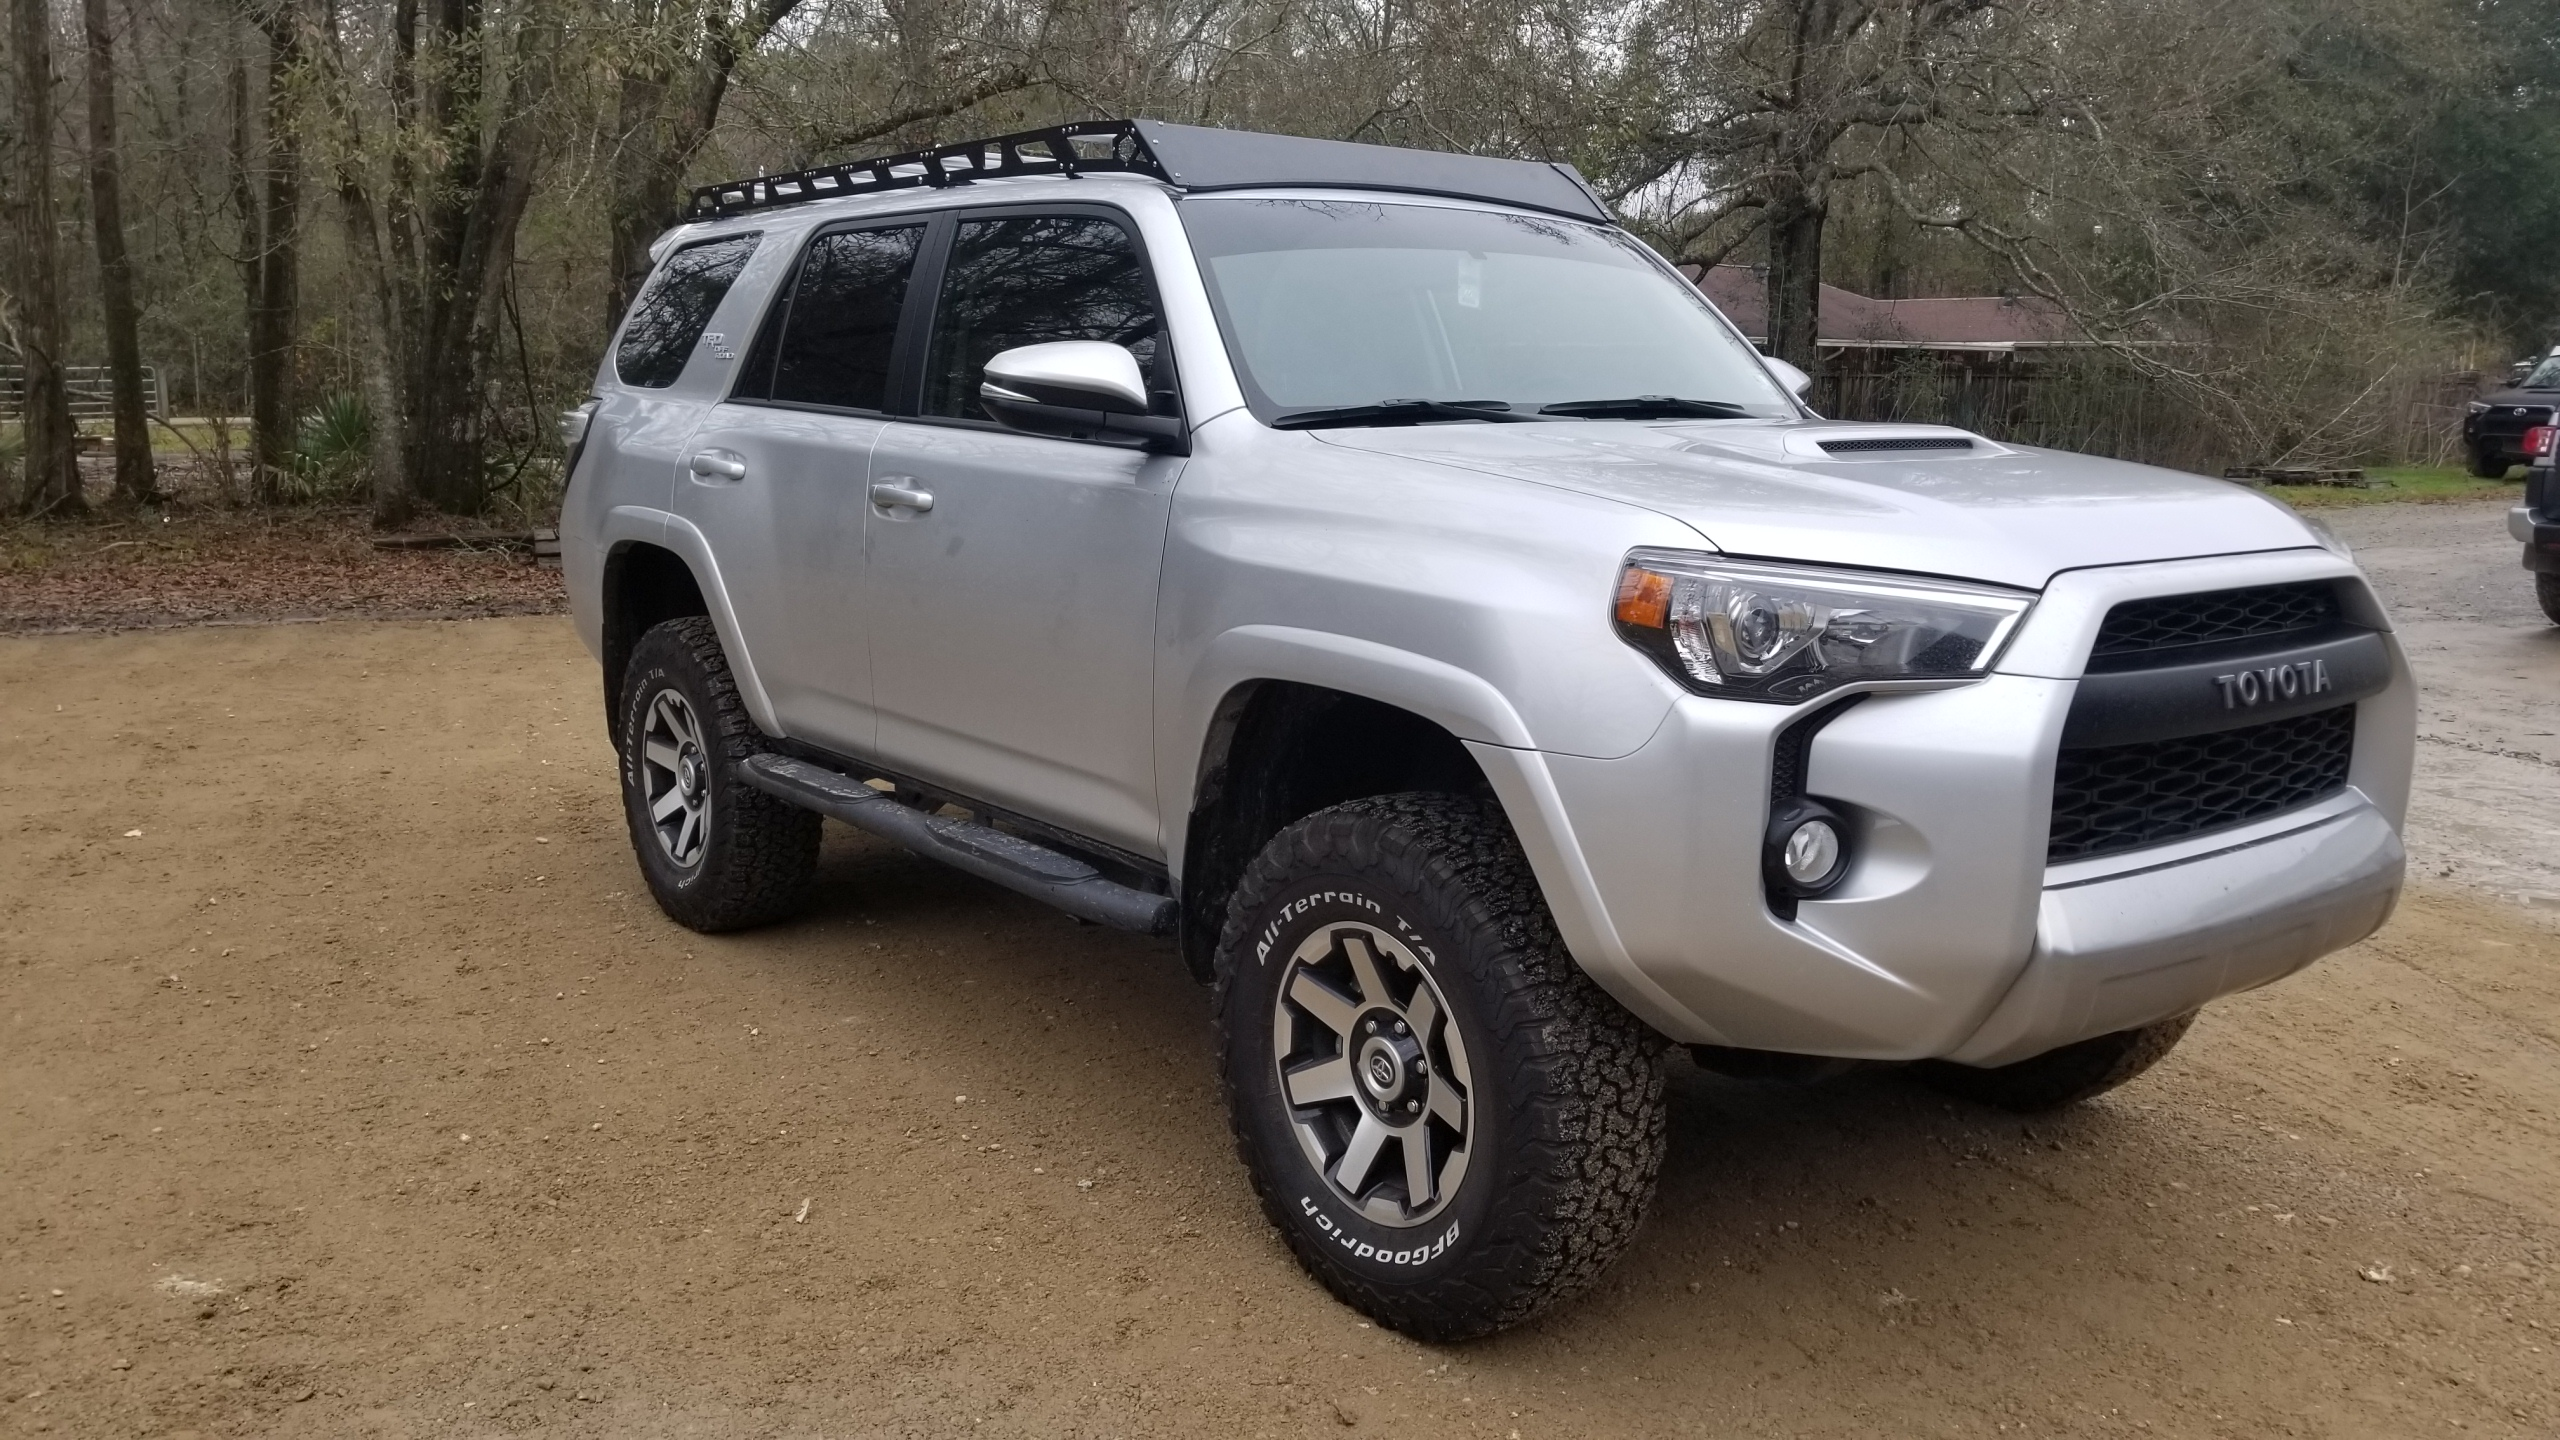 5th Gen 4Runner Roof Rack – Southern Style fRoad